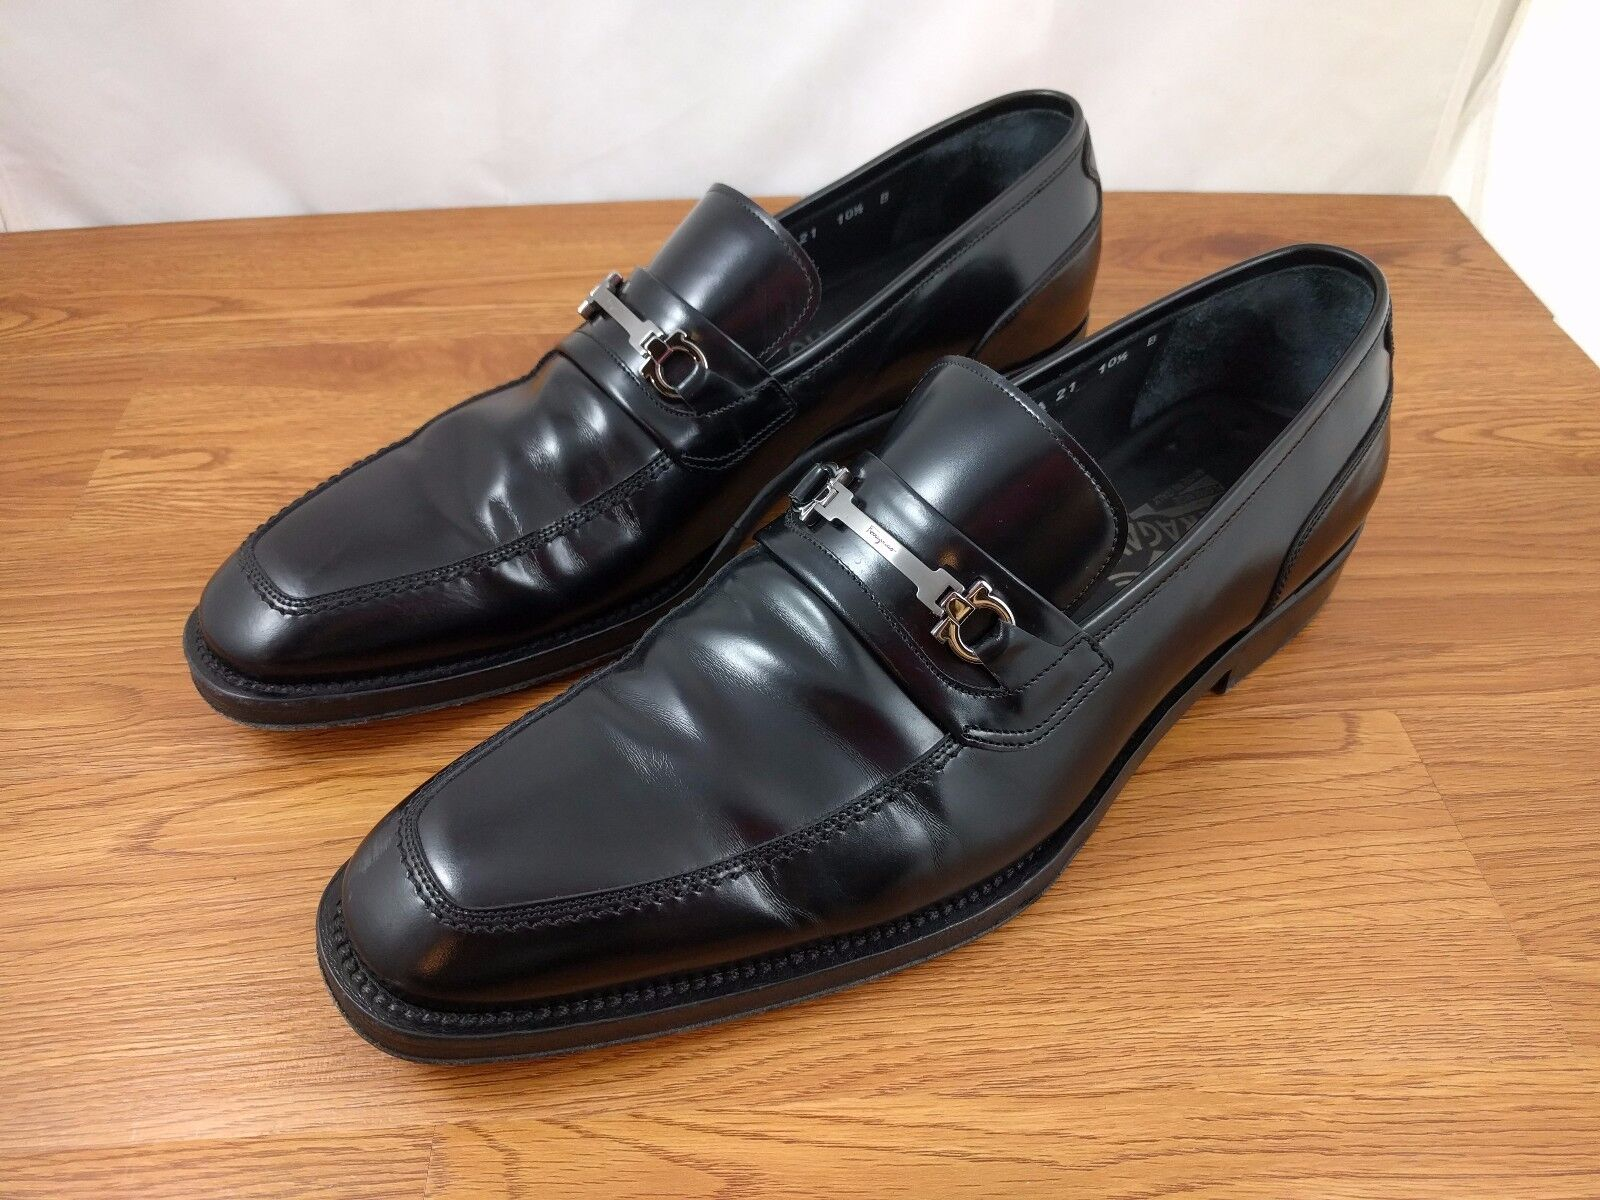 Salvatore Ferragamo Black Bit Mens shoes Loafer Loafer Loafer Leather Drivers Sz 10 1 2 B  238abc